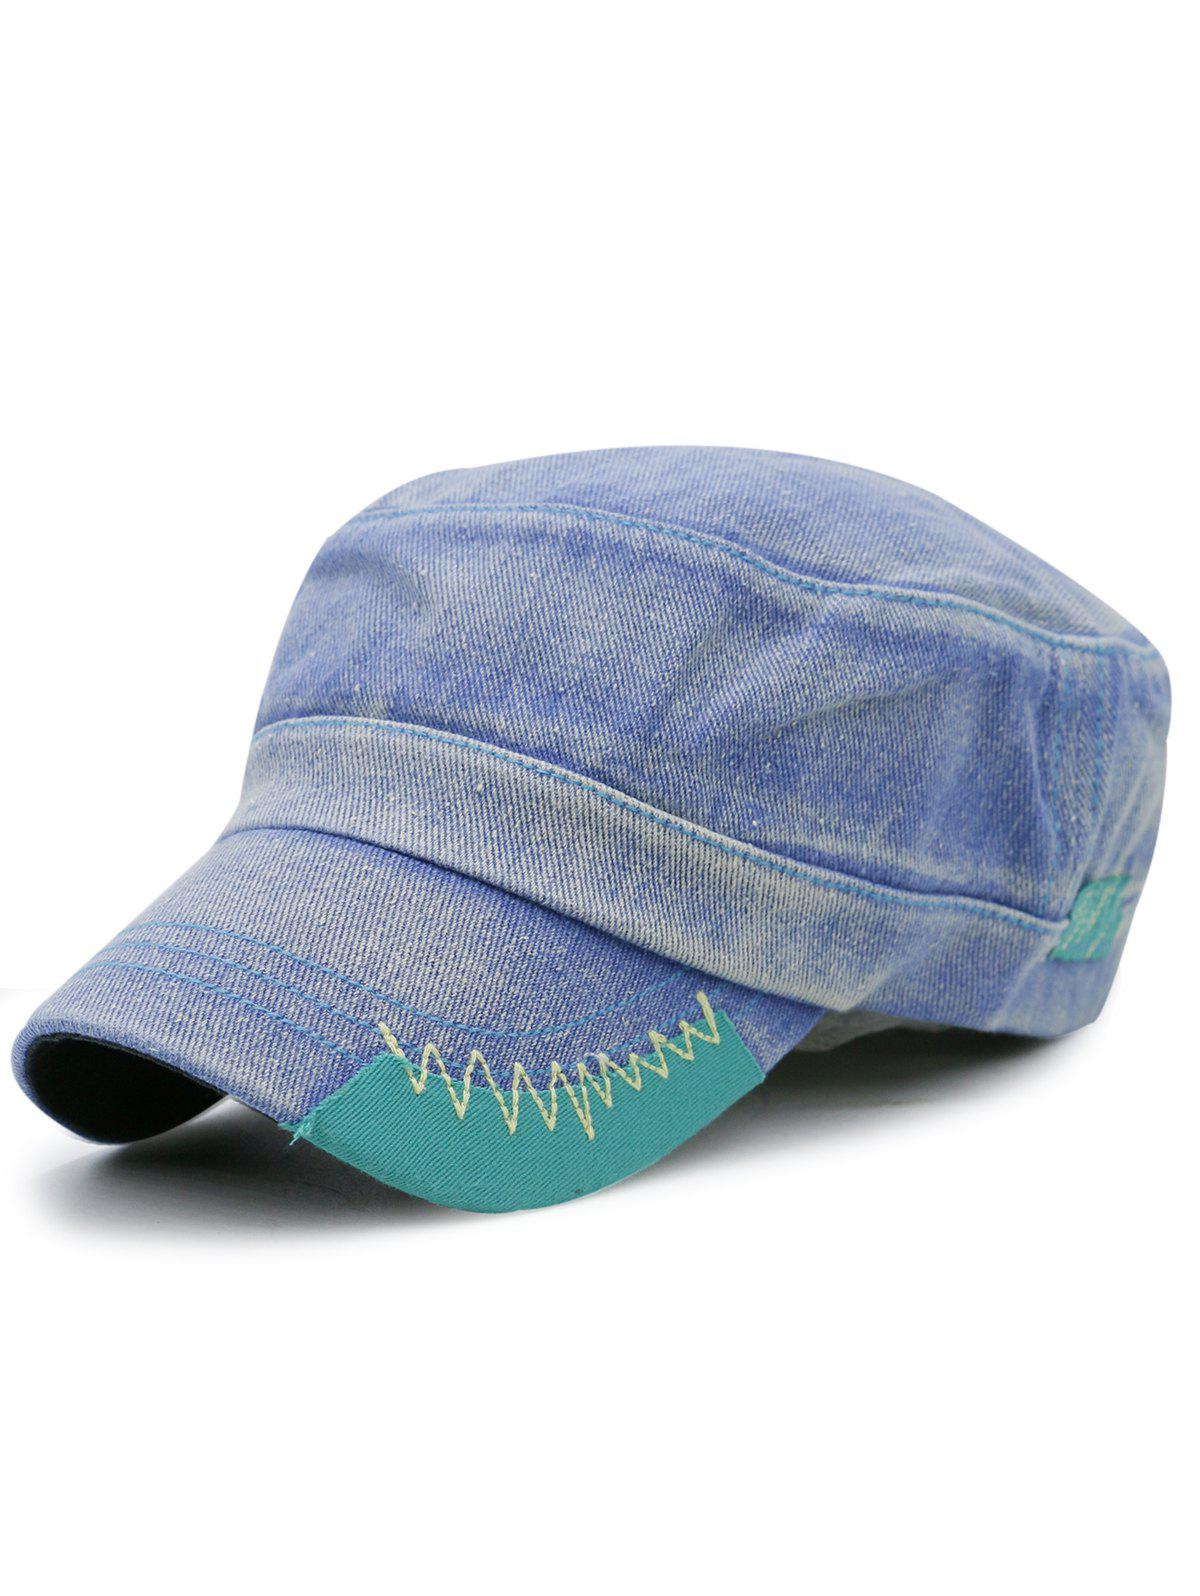 Fancy Outdoor Line Embroidery Adjustable Denim Military Hat